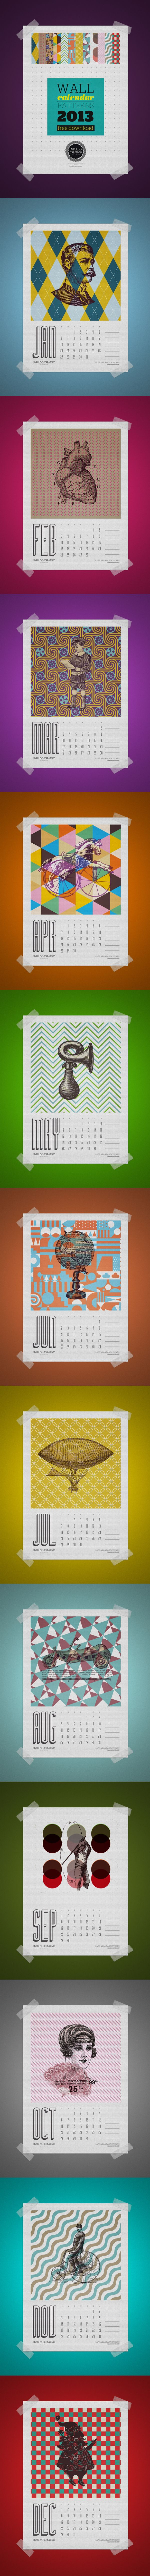 WallCalendar 2013 by Impulso Criativo